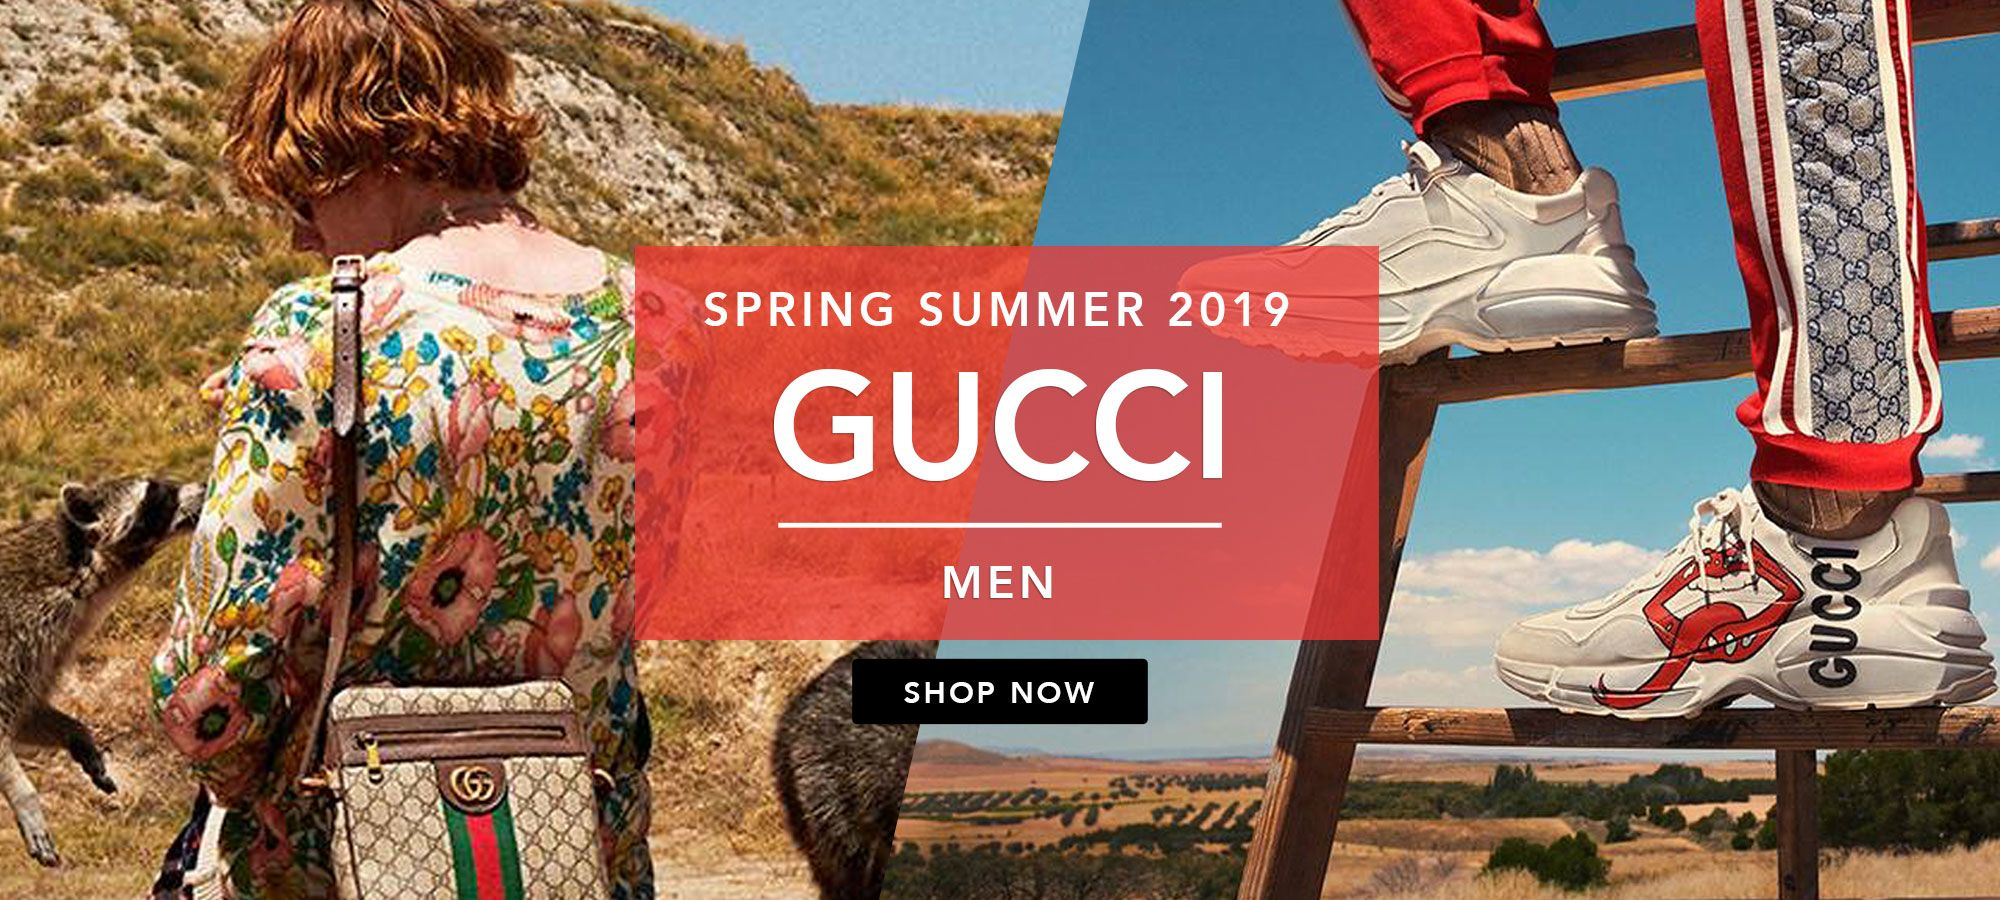 Gucci Men Spring Summer 2019 by italist